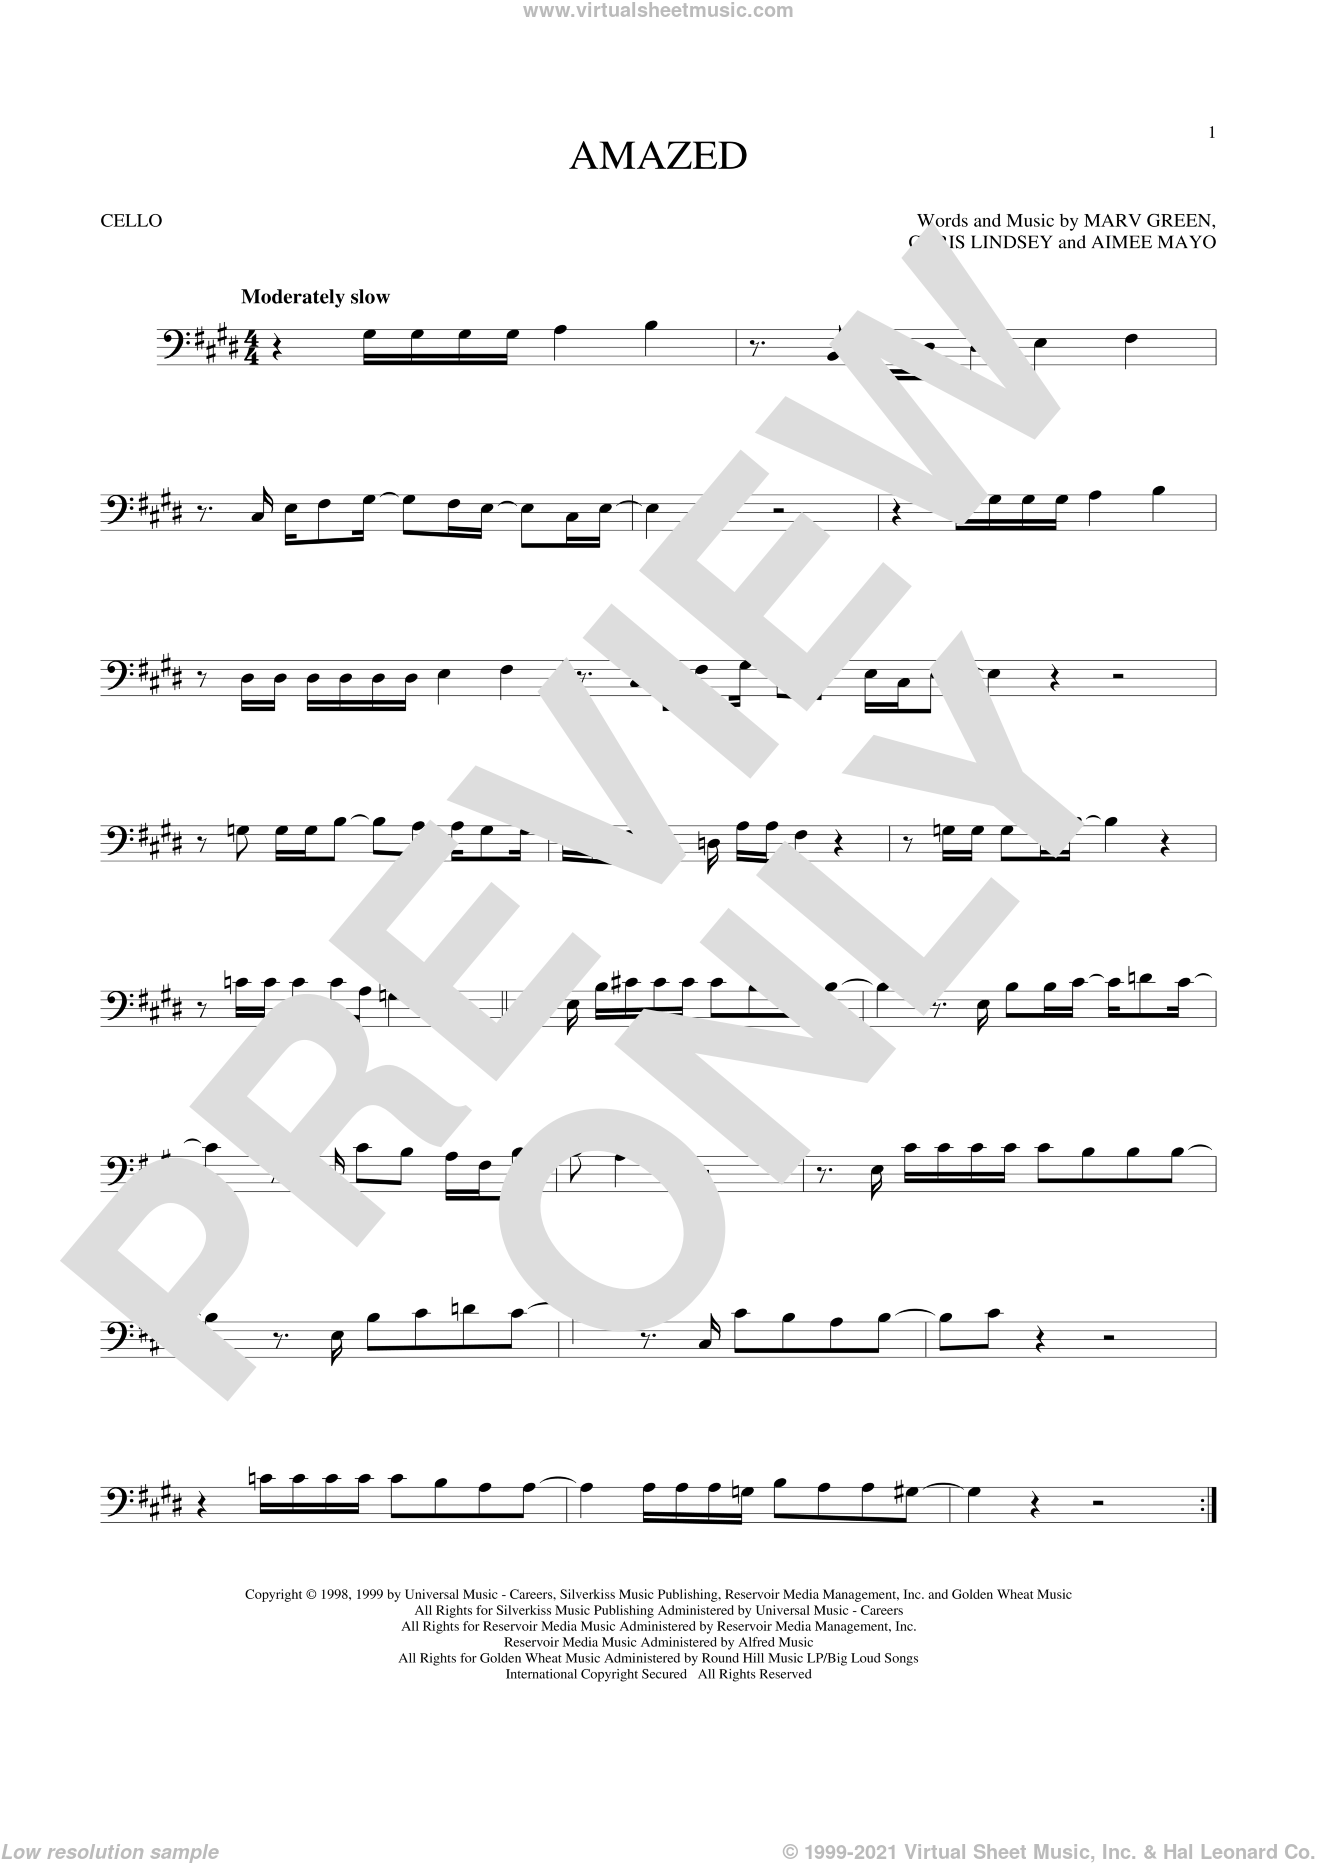 Amazed sheet music for cello solo by Lonestar, Aimee Mayo, Chris Lindsey and Marv Green. Score Image Preview.